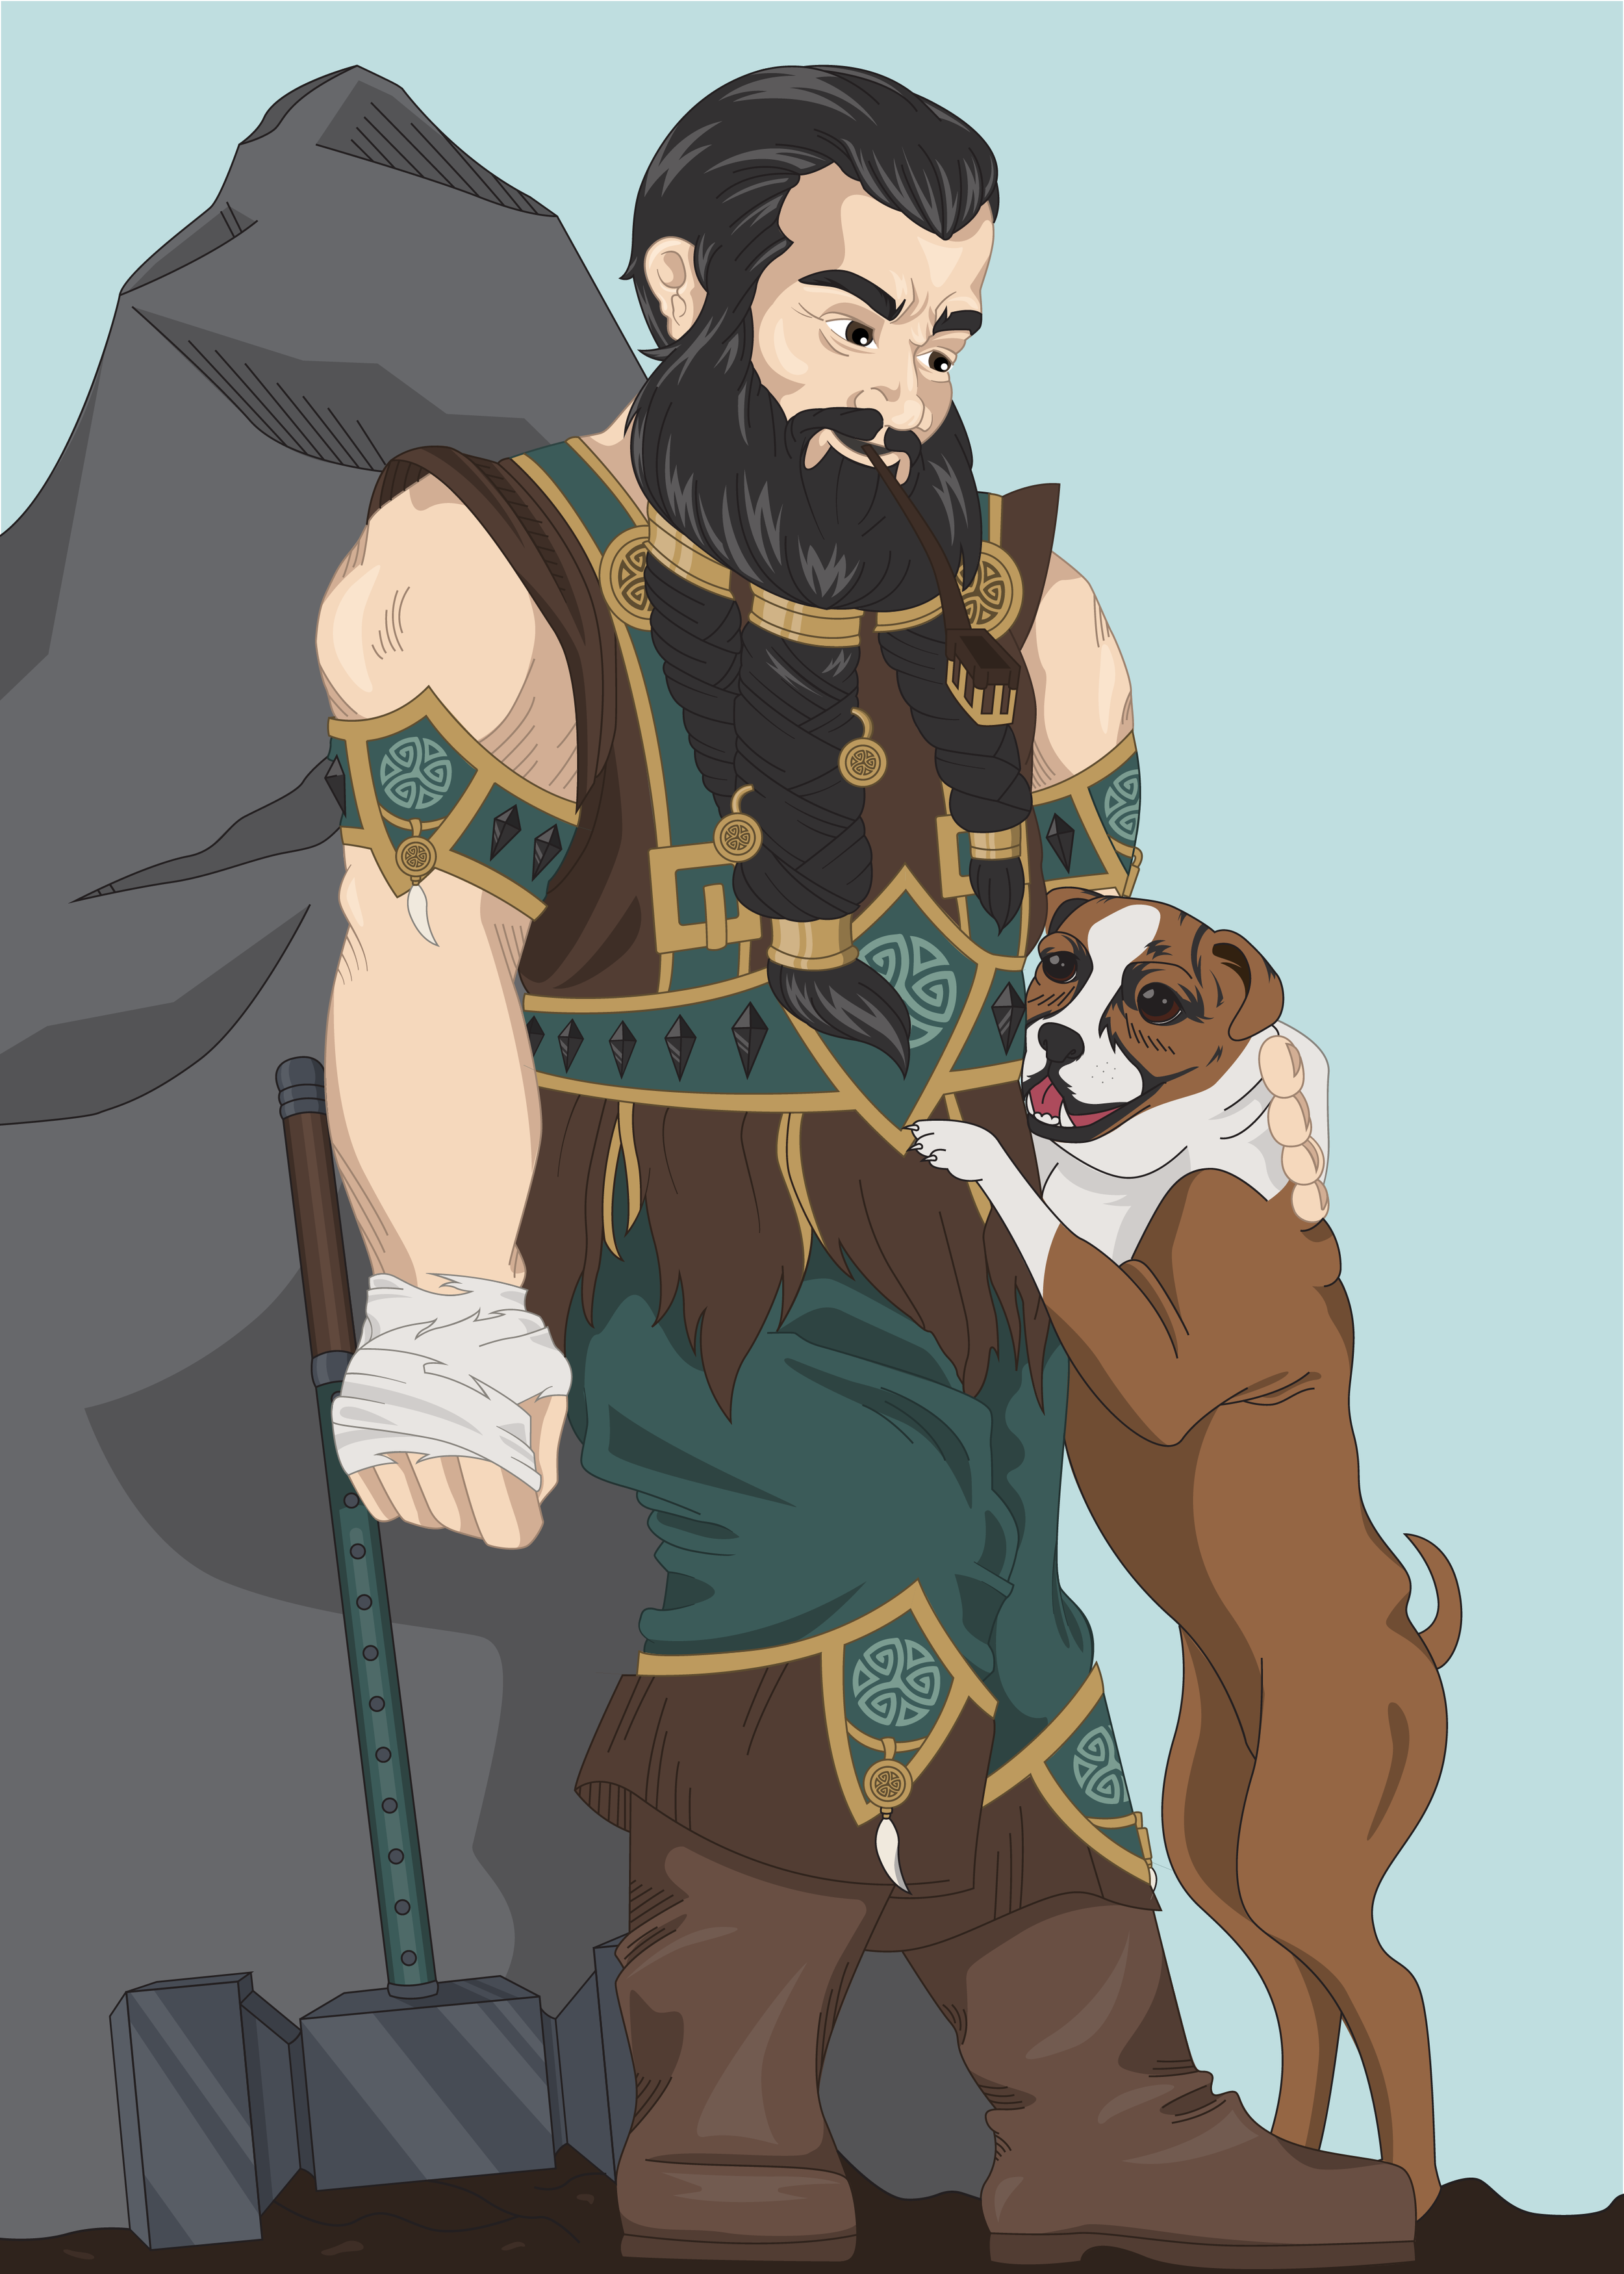 Dungeons and Dragons Character Illustration Commission   Tools Used: Pencil Sketch, Adobe Illustrator